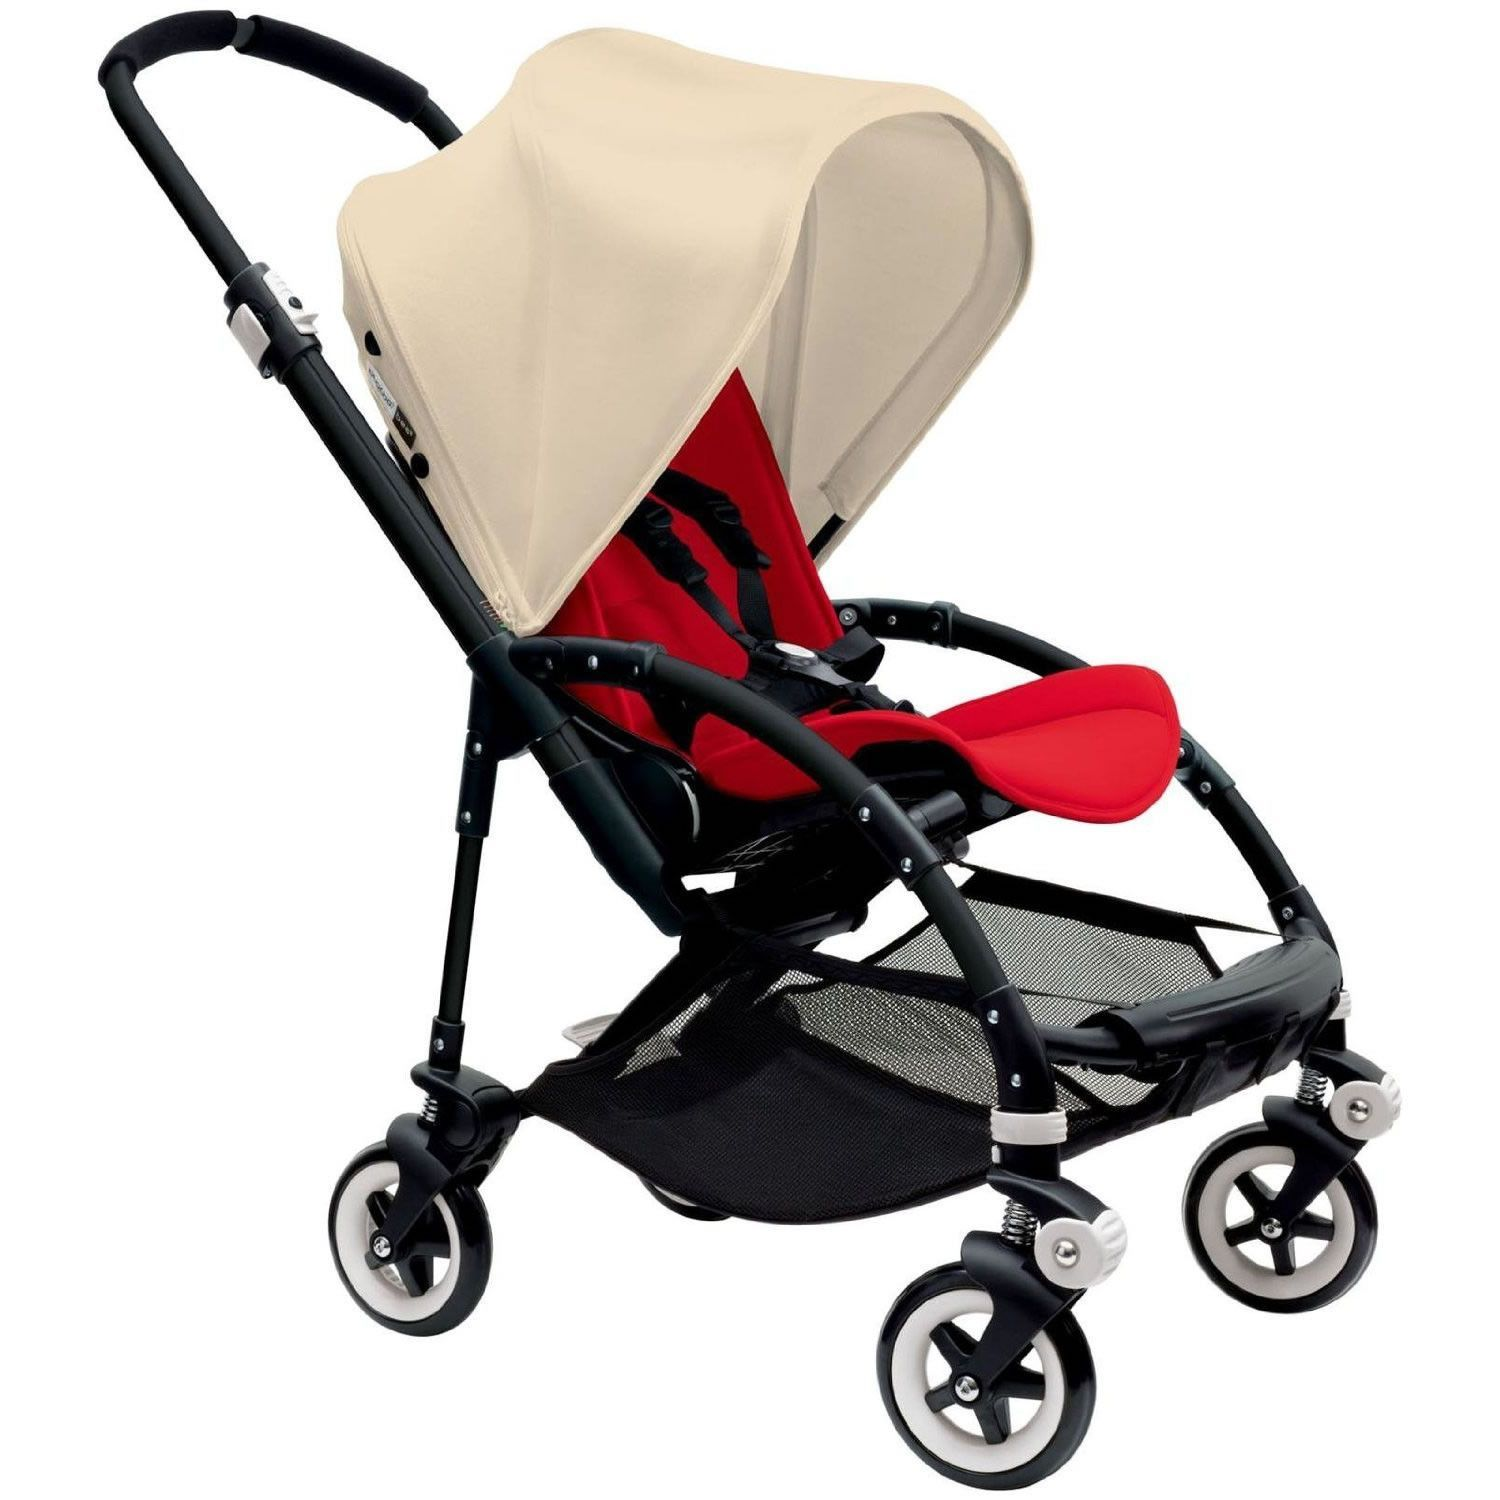 Bugaboo Bee3 Stroller Black Red OffWhite Bugaboo